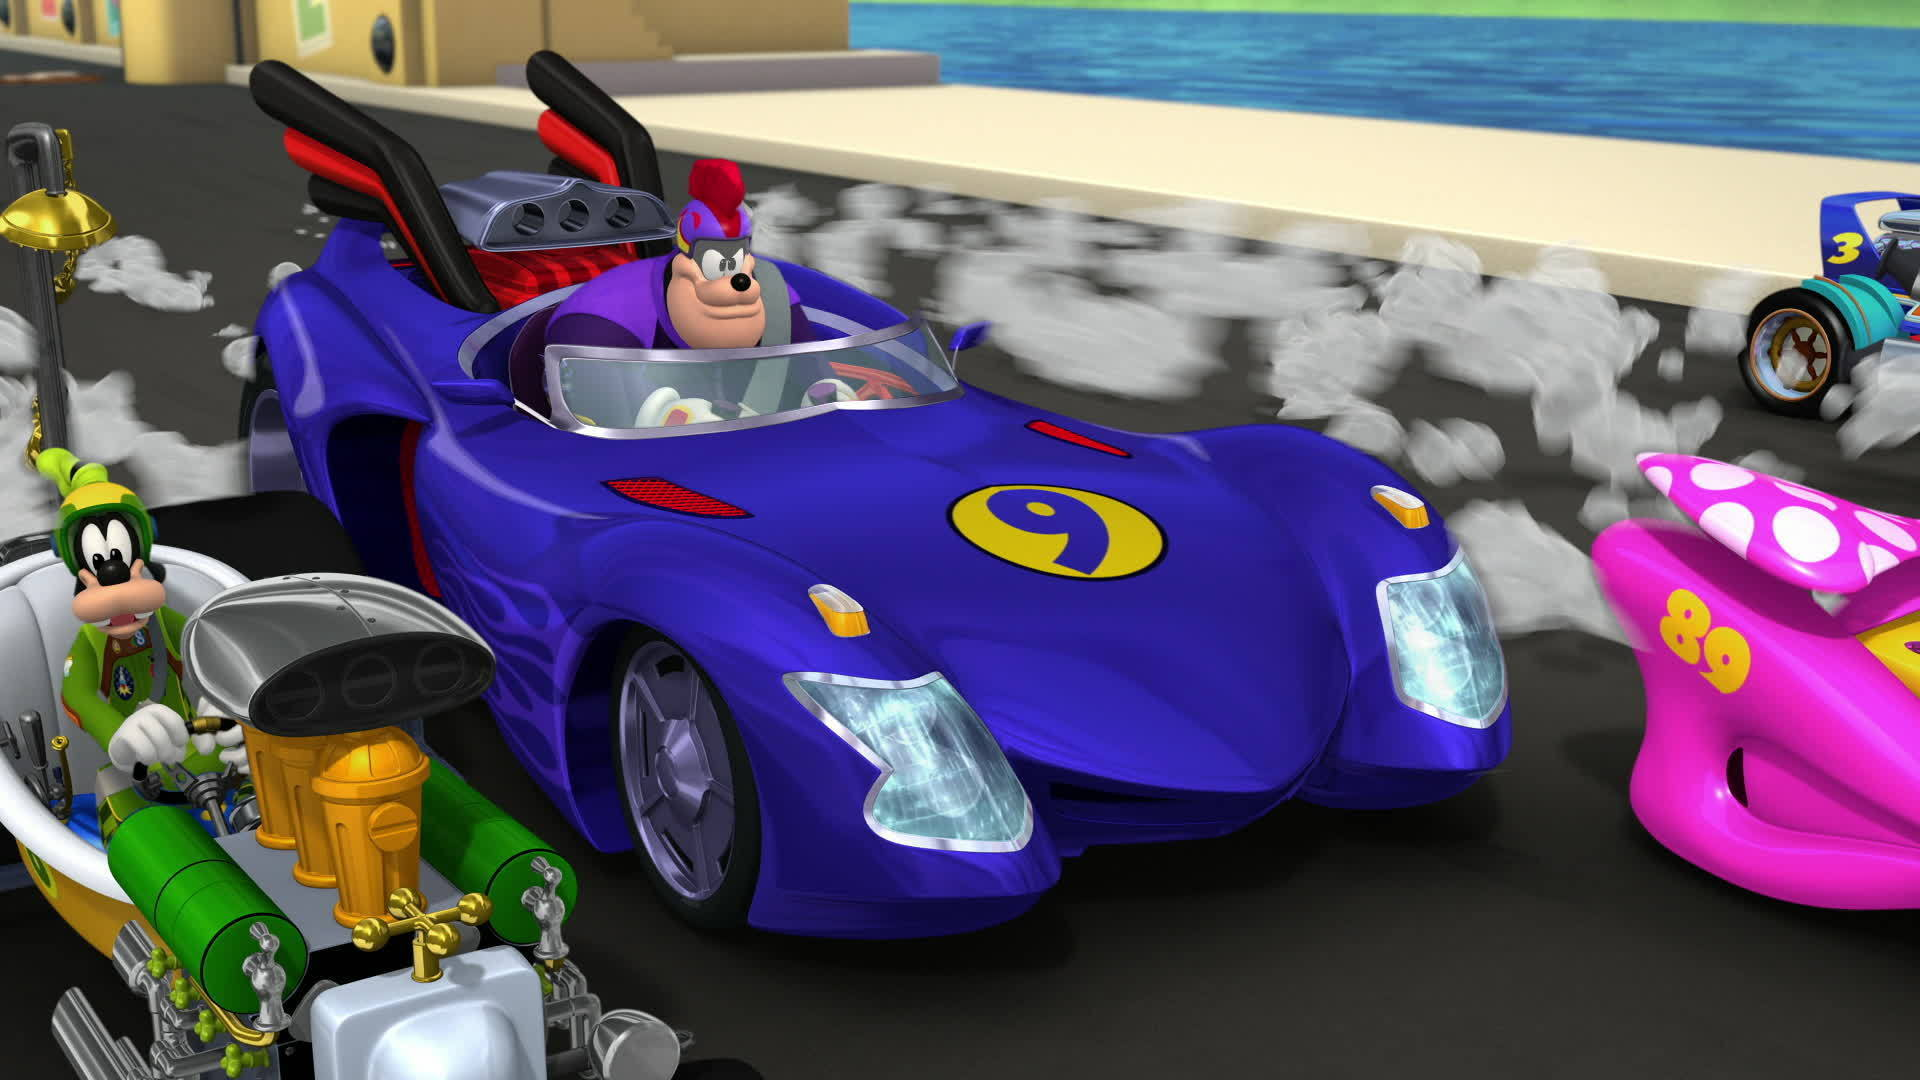 Music Video: Roadster Racers Go